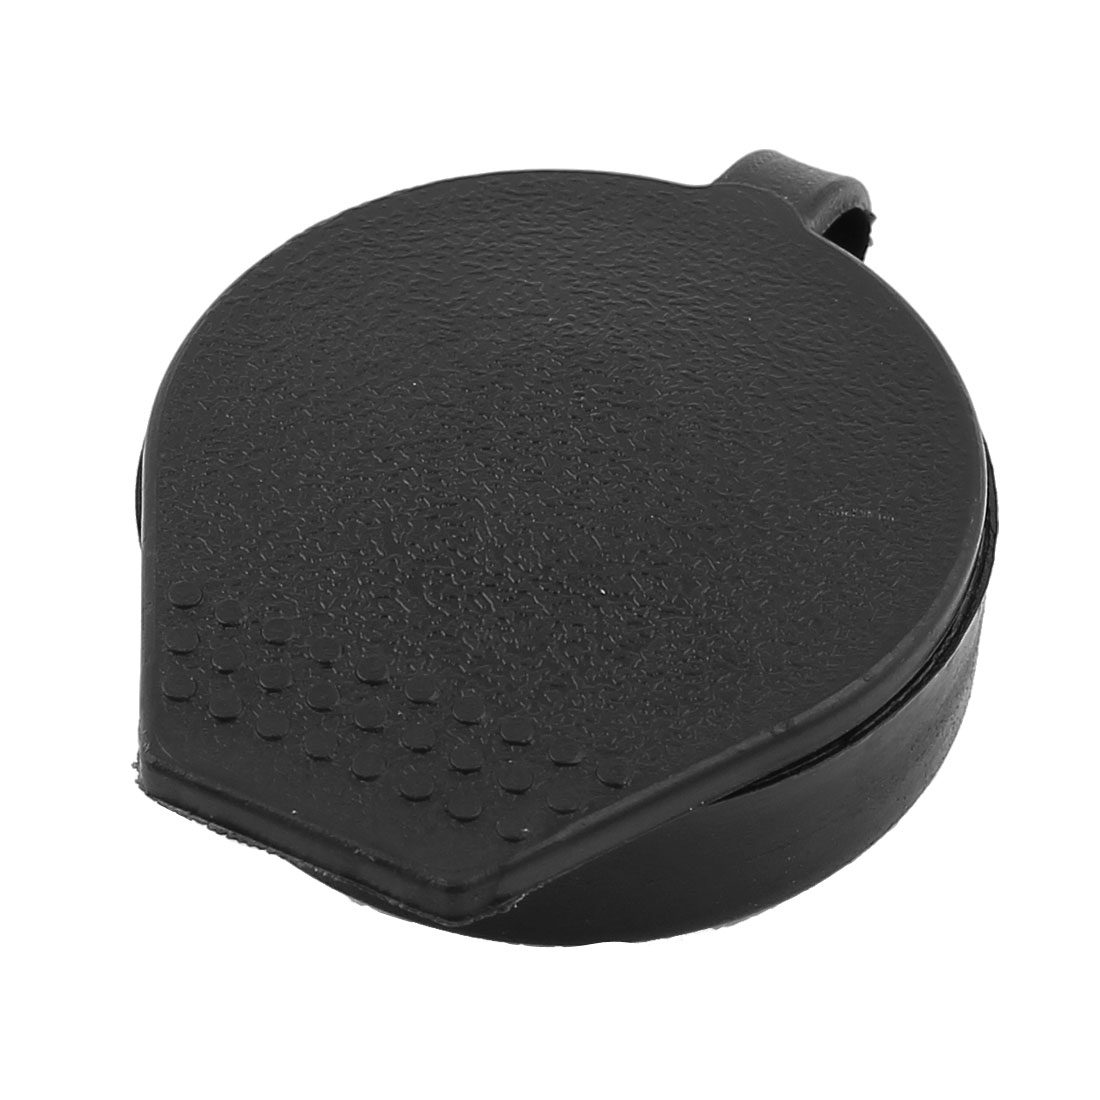 Black Rubber 32mm Dia Cam Lock Cover Water Dust Resistant Cover Protector